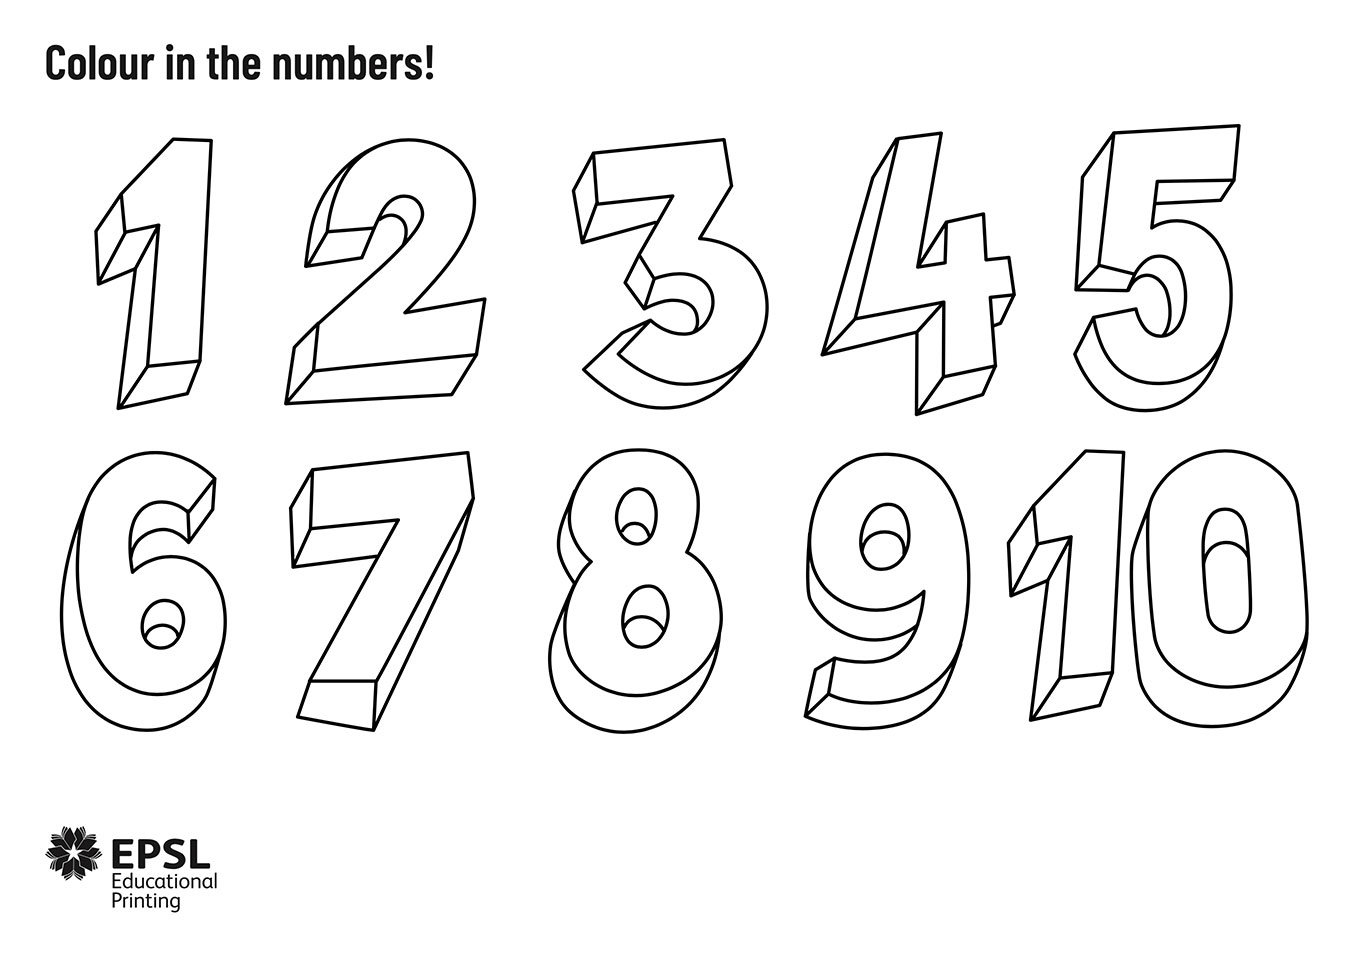 Colouring numbers